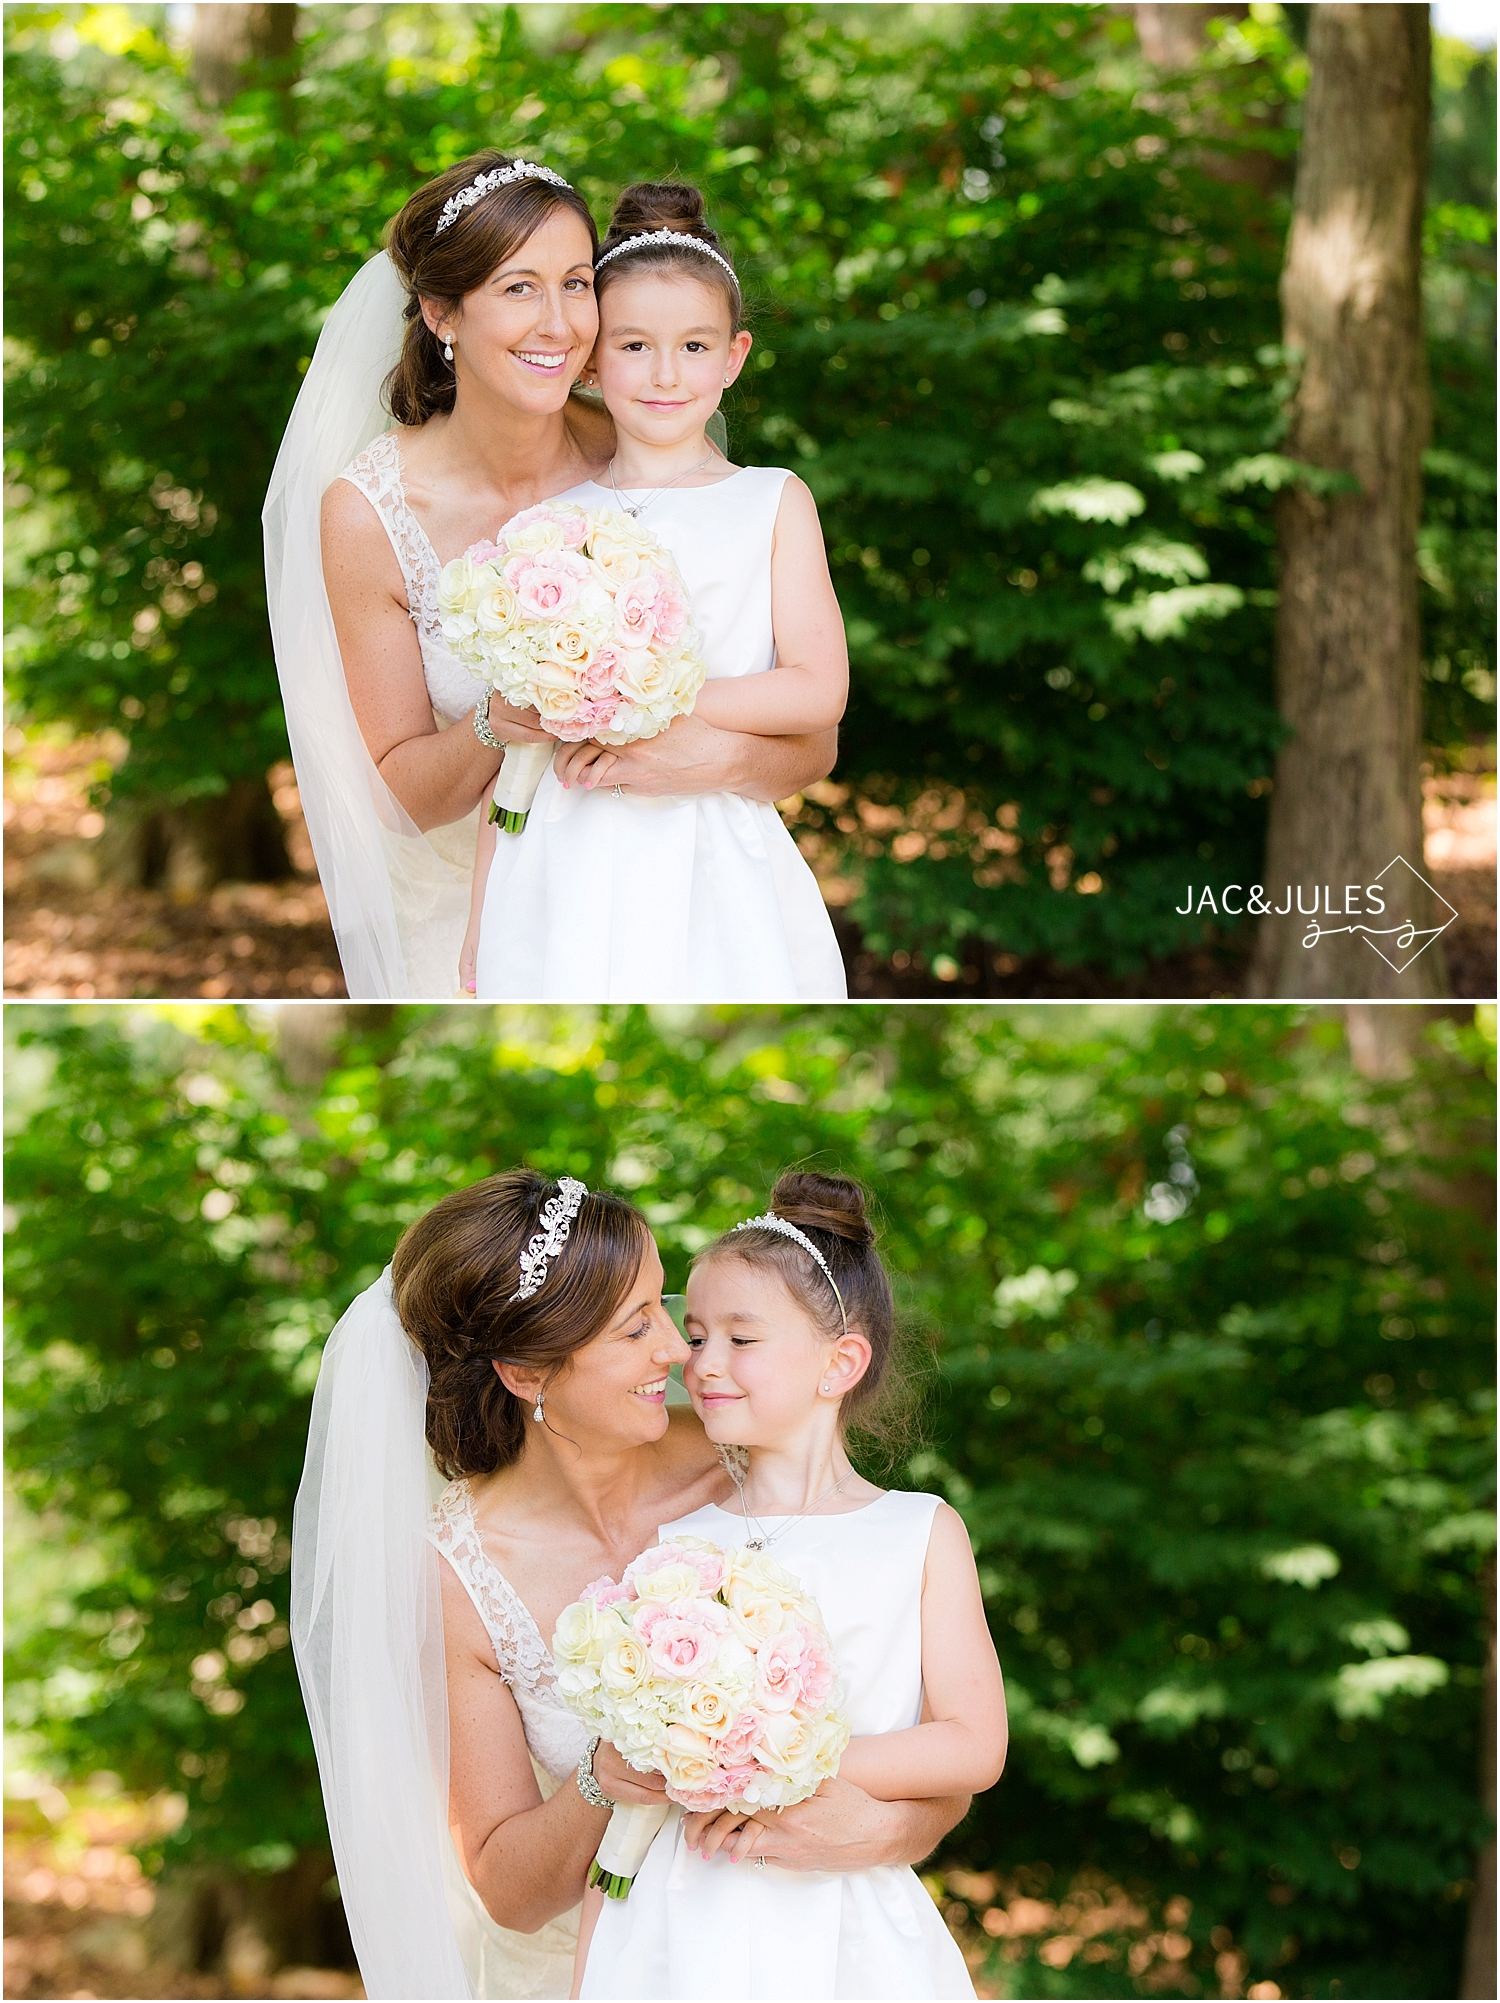 jacnjules photographs the bride and the flower girl at a wedding at Grounds for Sculpture in Hamilton, NJ